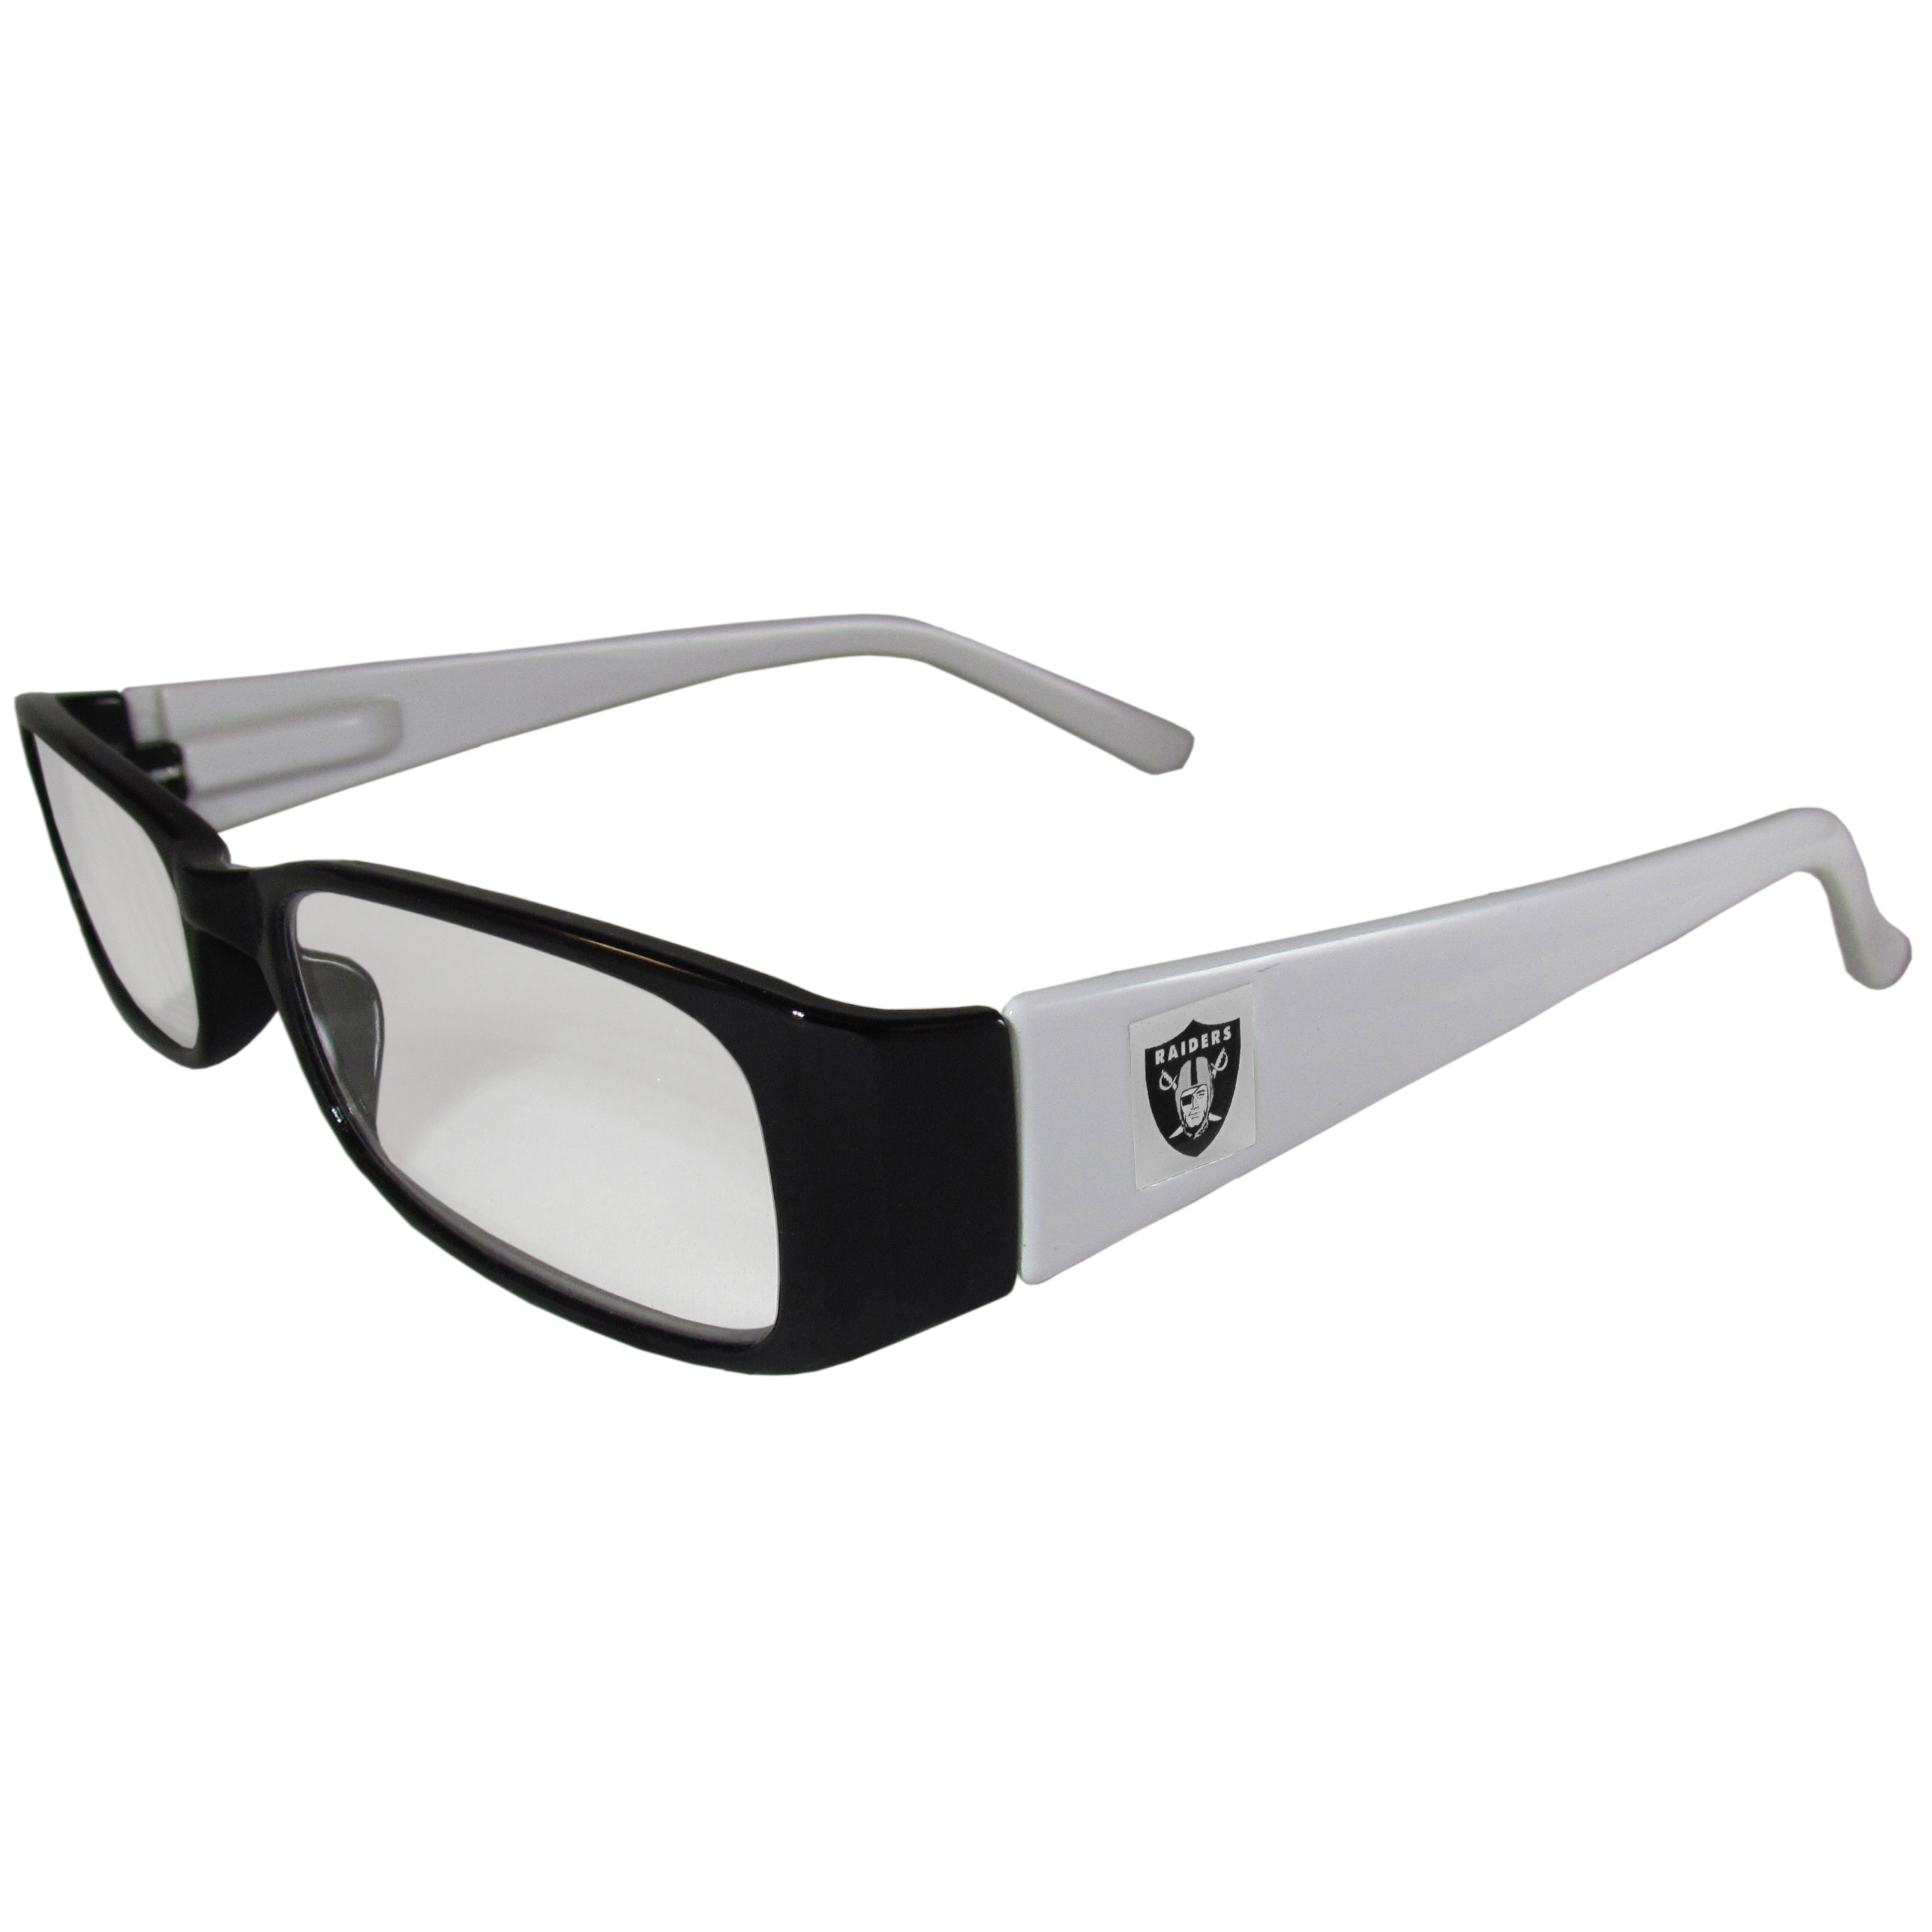 Oakland Raiders Reading Glasses +1.25 - Our Oakland Raiders reading glasses are 5.25 inches wide and feature the team logo on each arm. Magnification Power 1.25